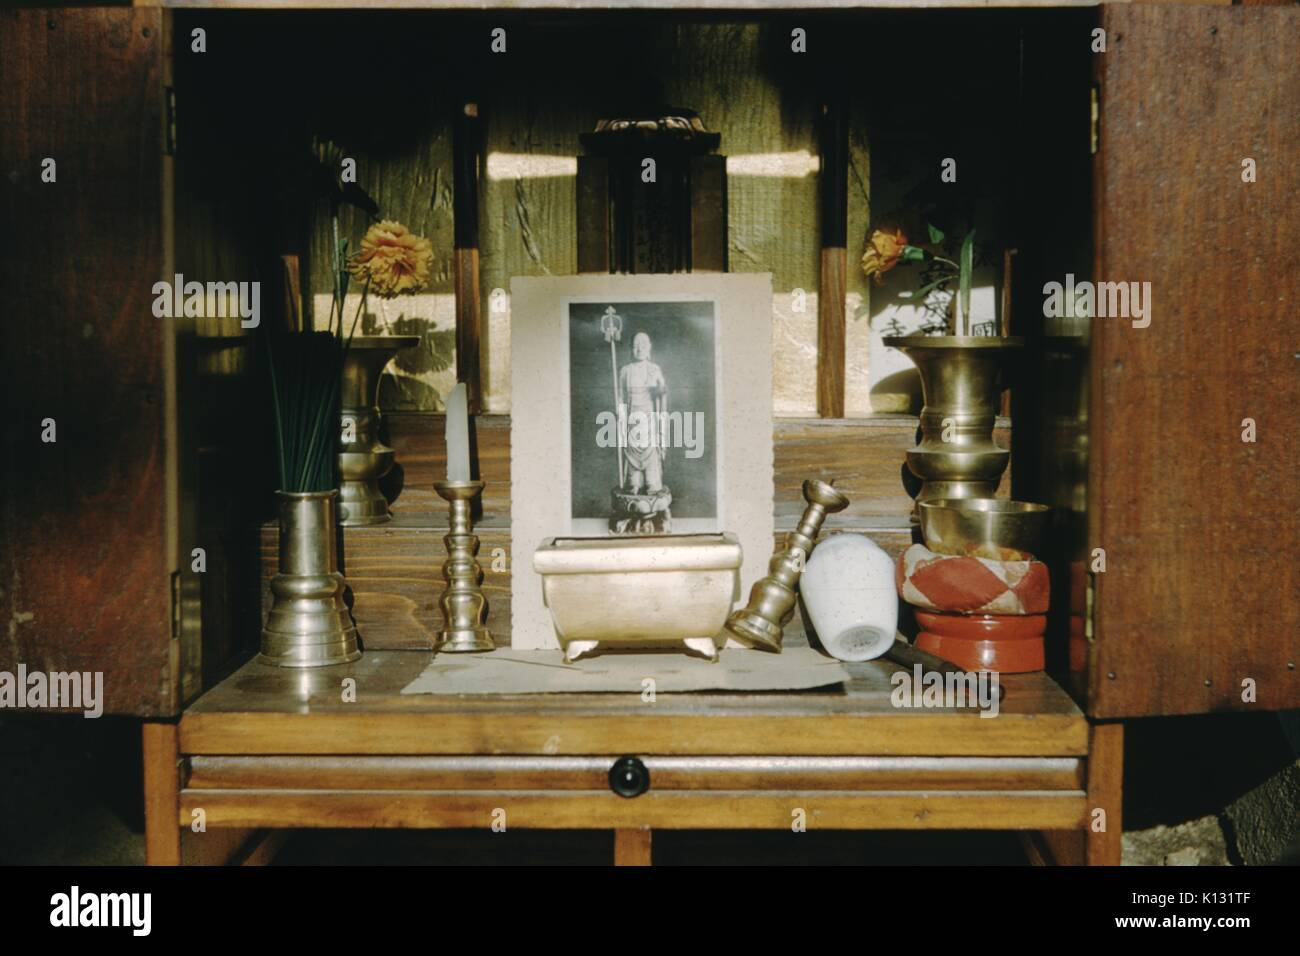 Altar with incense, a printed image, brass candle holders, candles and flowers, inside a wooden cabinet, Japan, 1952. - Stock Image